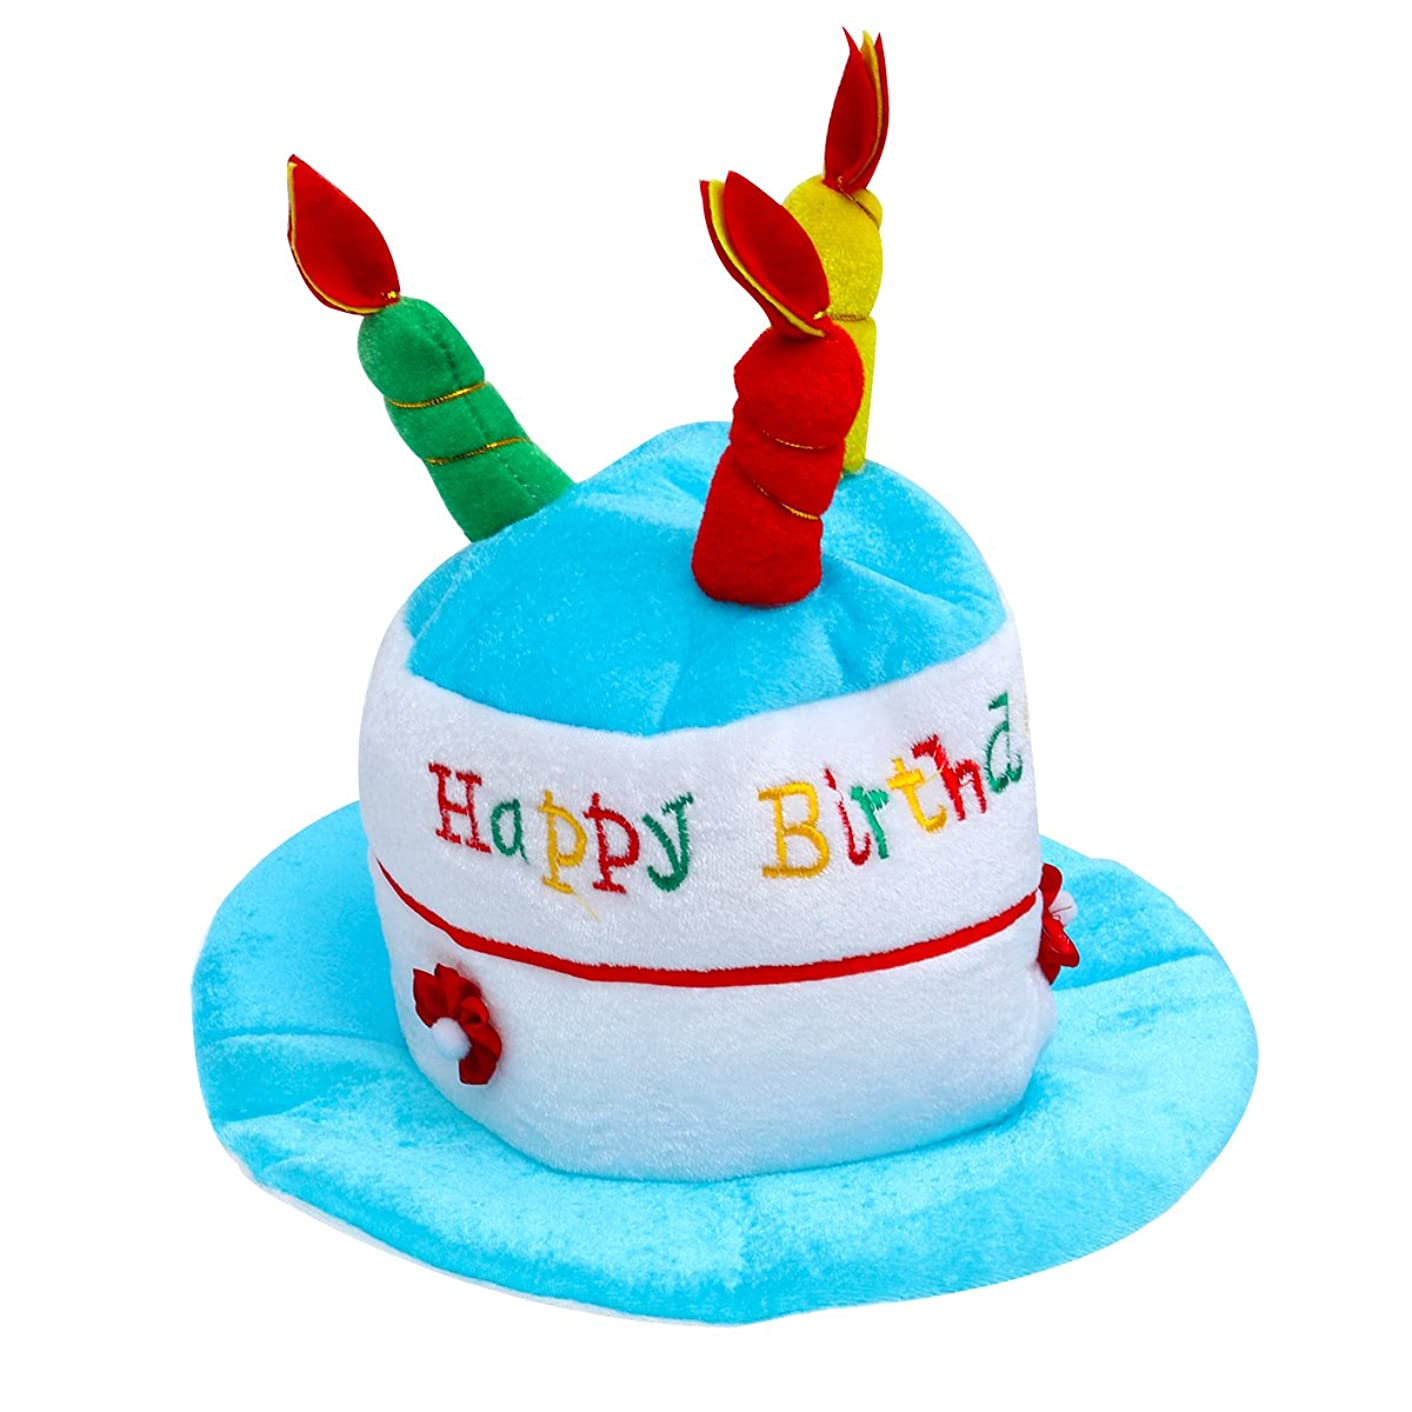 BESTOYARD Kids Happy Birthday Cake Hat with Candles Novelty Party Hat for Children's Birthday Party Costume Decoration (Blue)